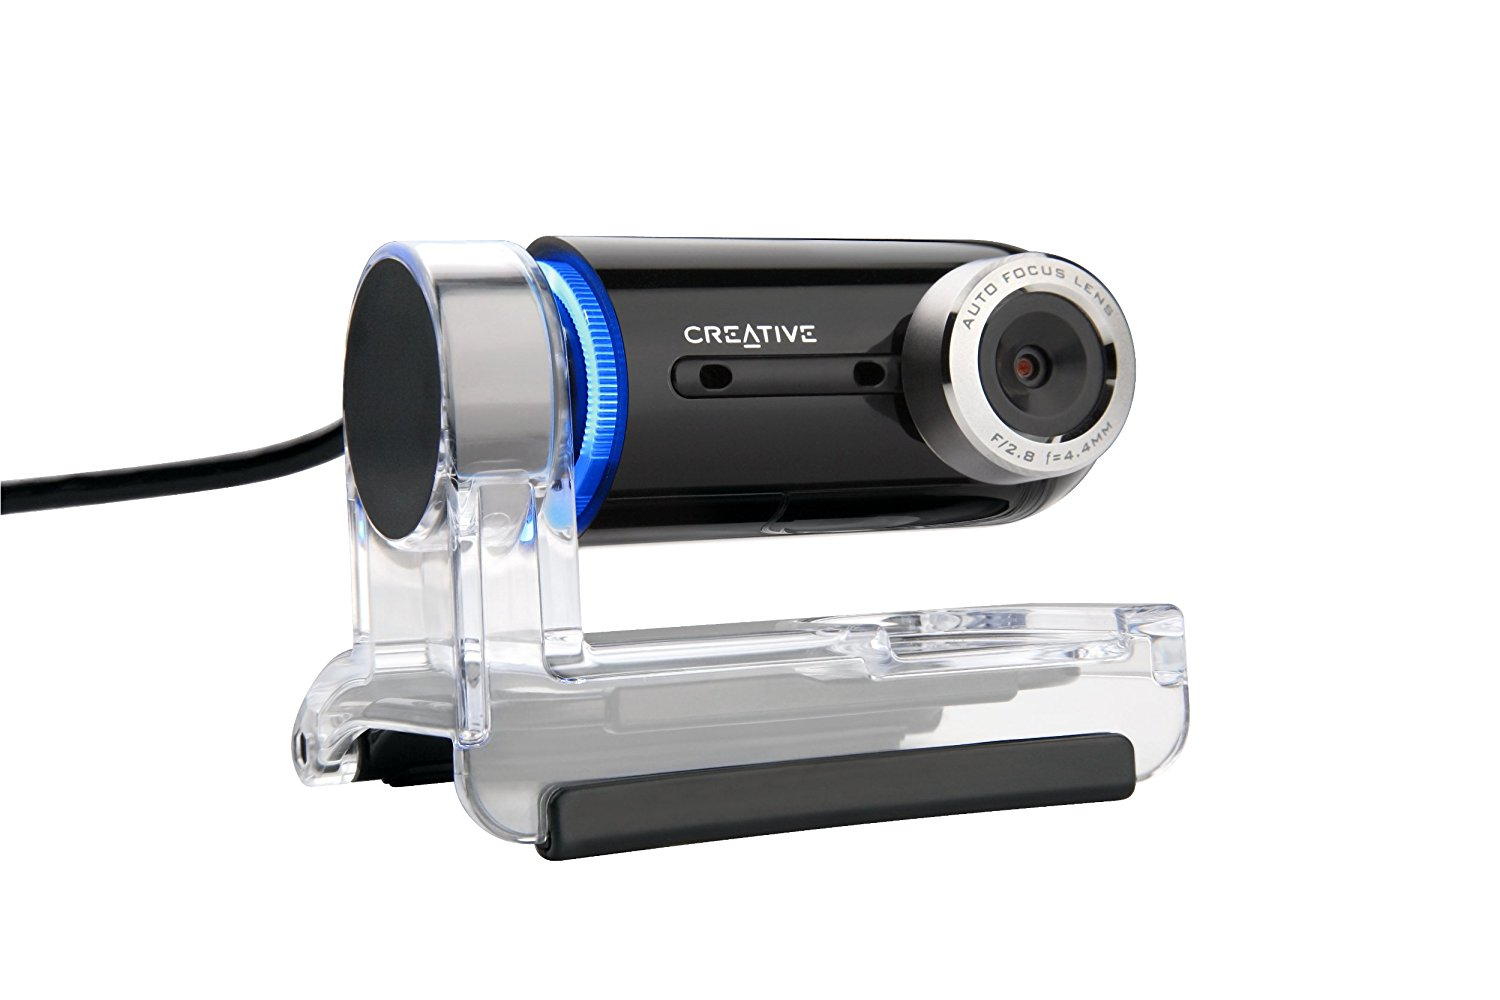 Camera creative driver ultra web nx